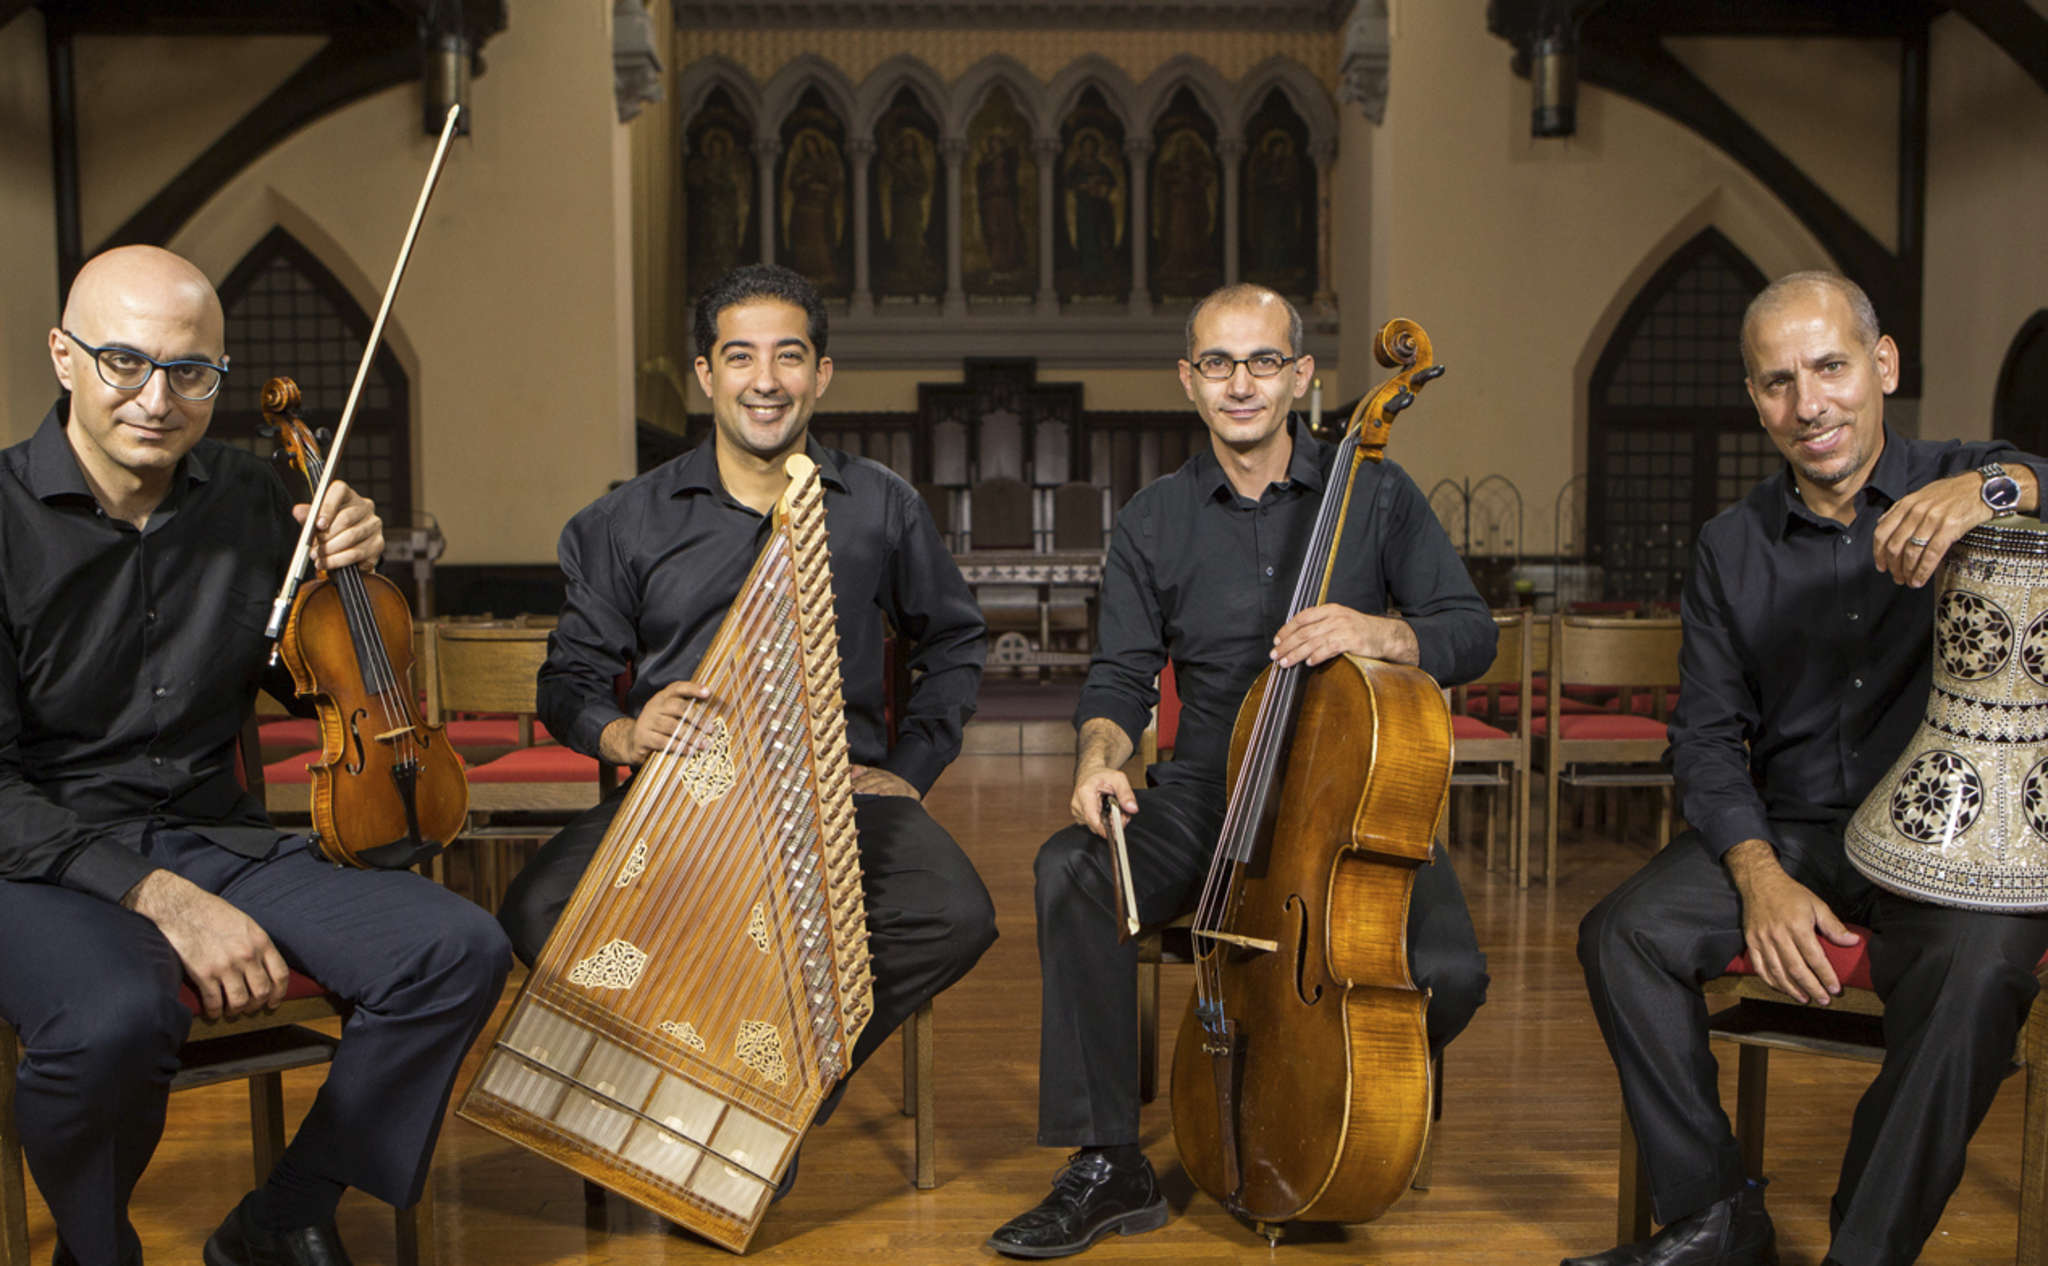 The Al-Bustan Takht Ensemble, which blends instruments from the Middle East and the West, will be among groups in the ambitious project Words Adorned: Andalusian Poetry and Music, on Saturday at Bryn Mawr College.